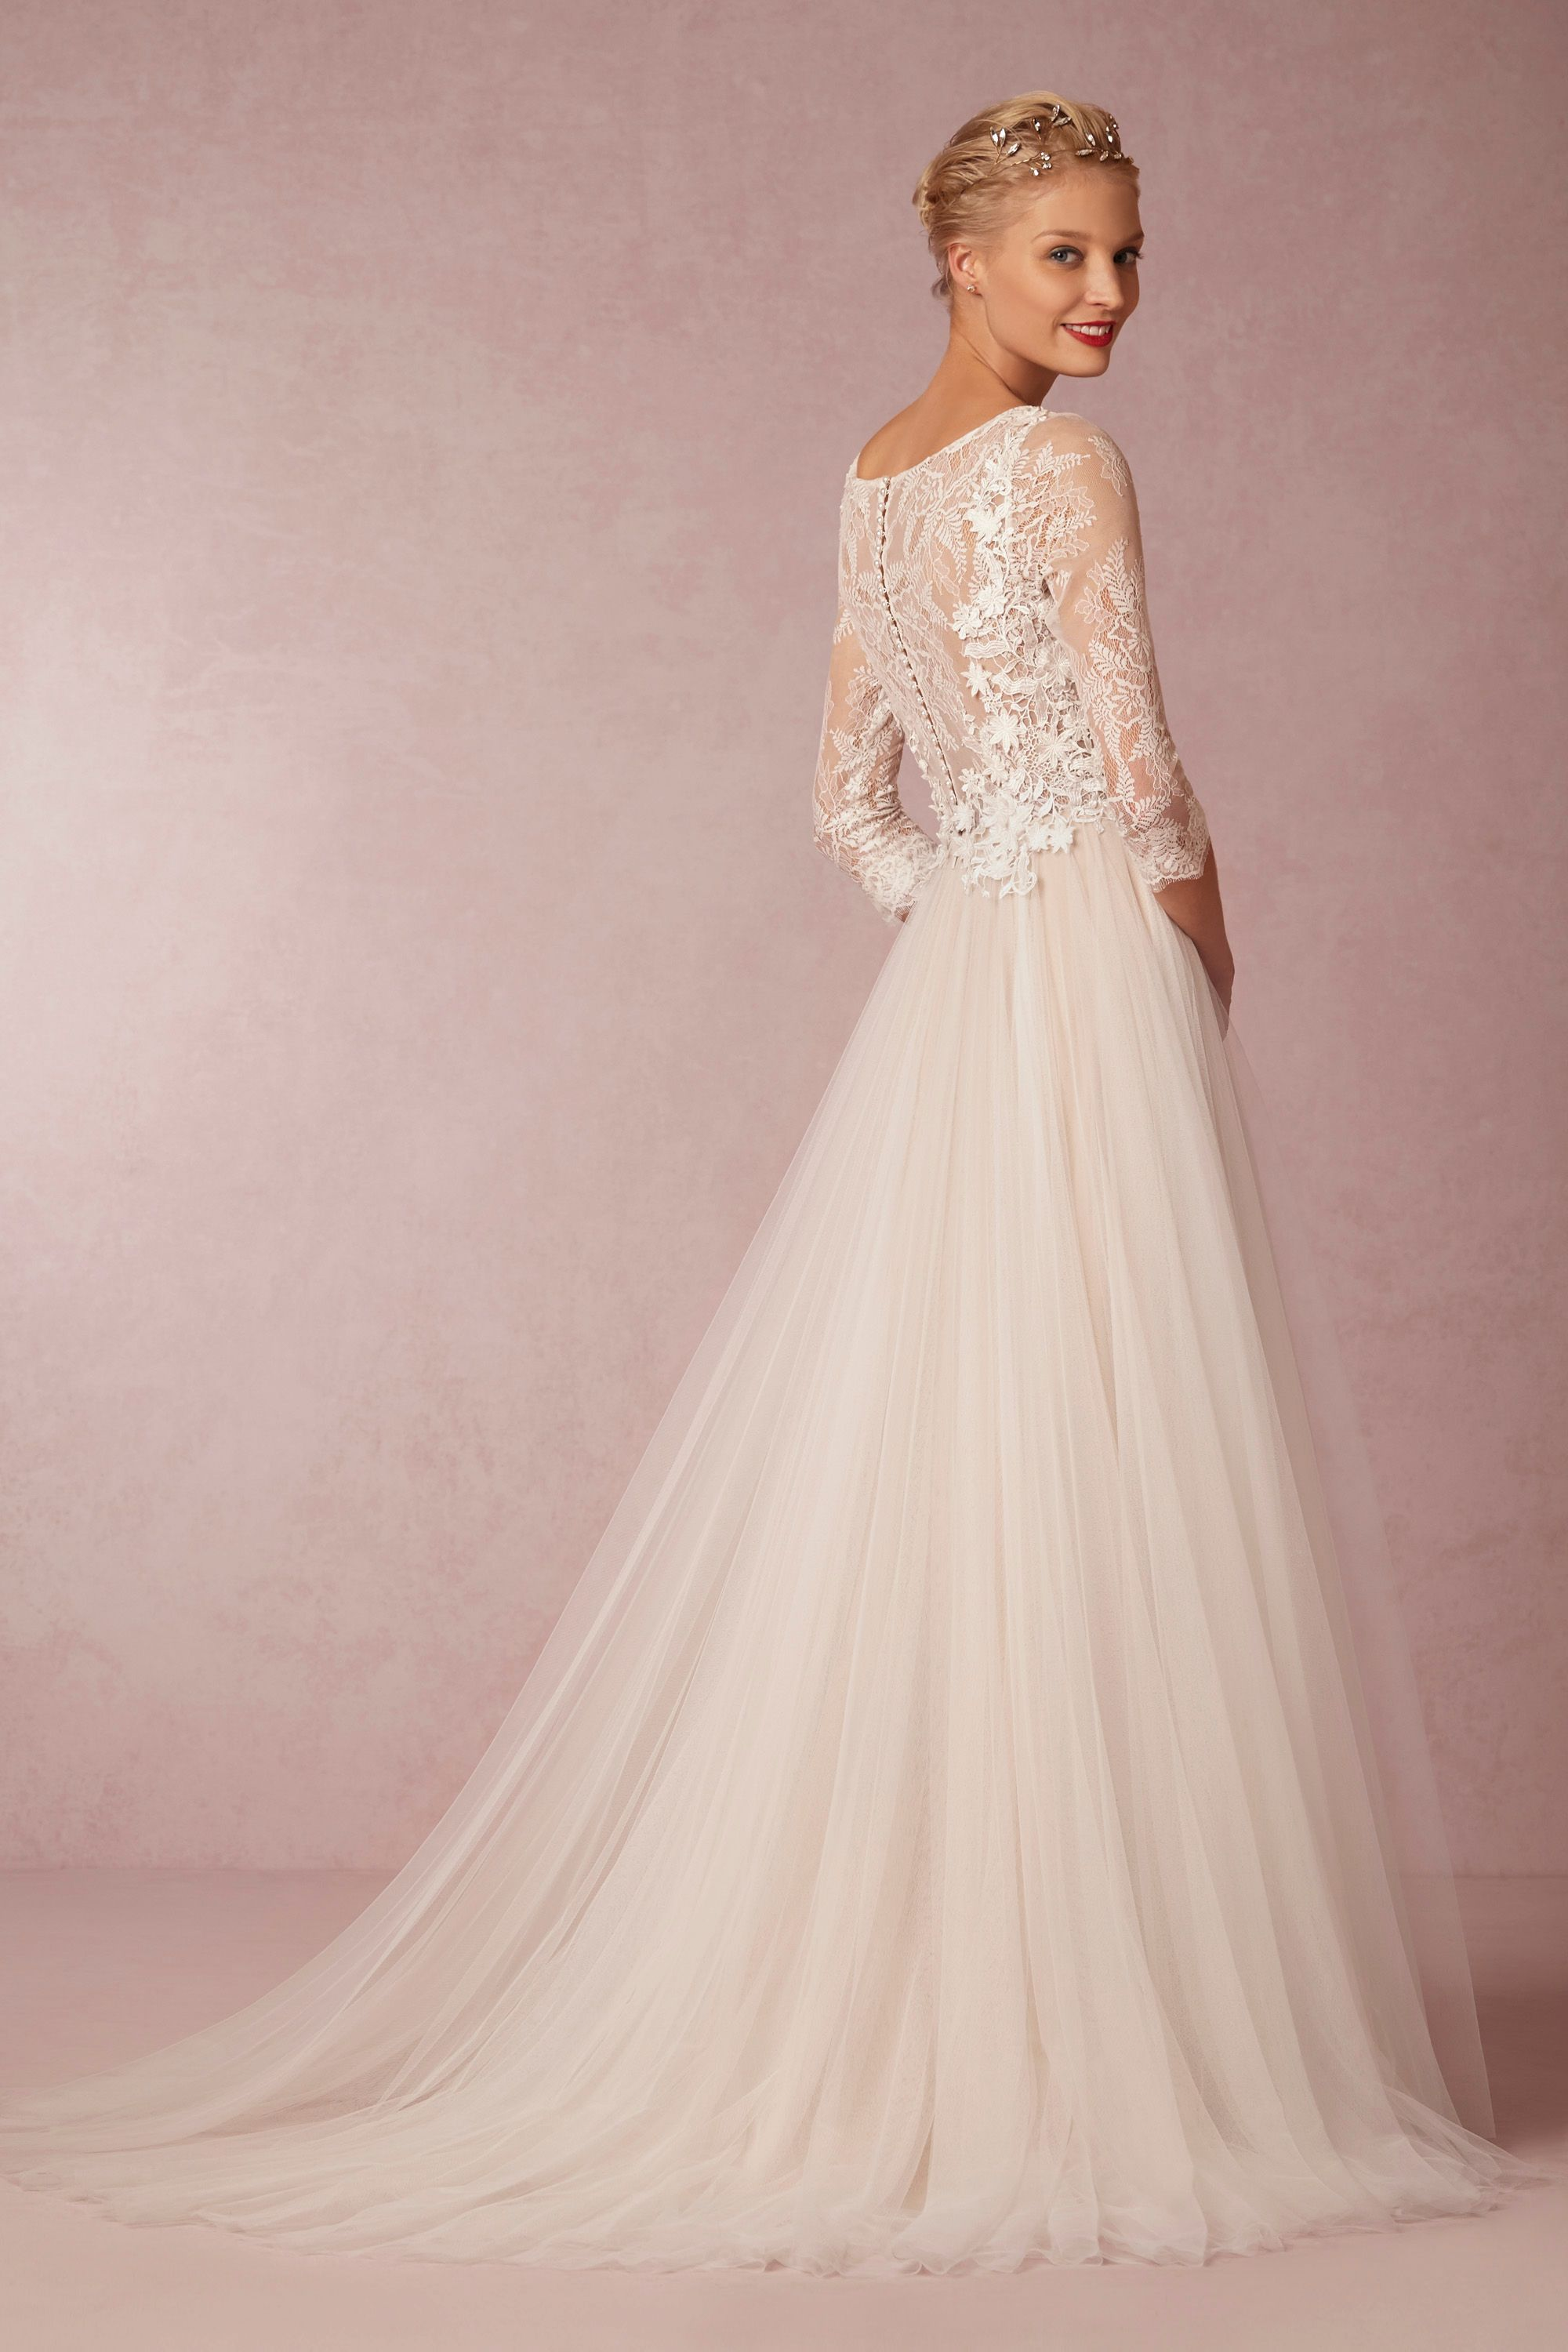 amelie gown wedding dress online Watters Ivory Nude Amelie Gown BHLDN